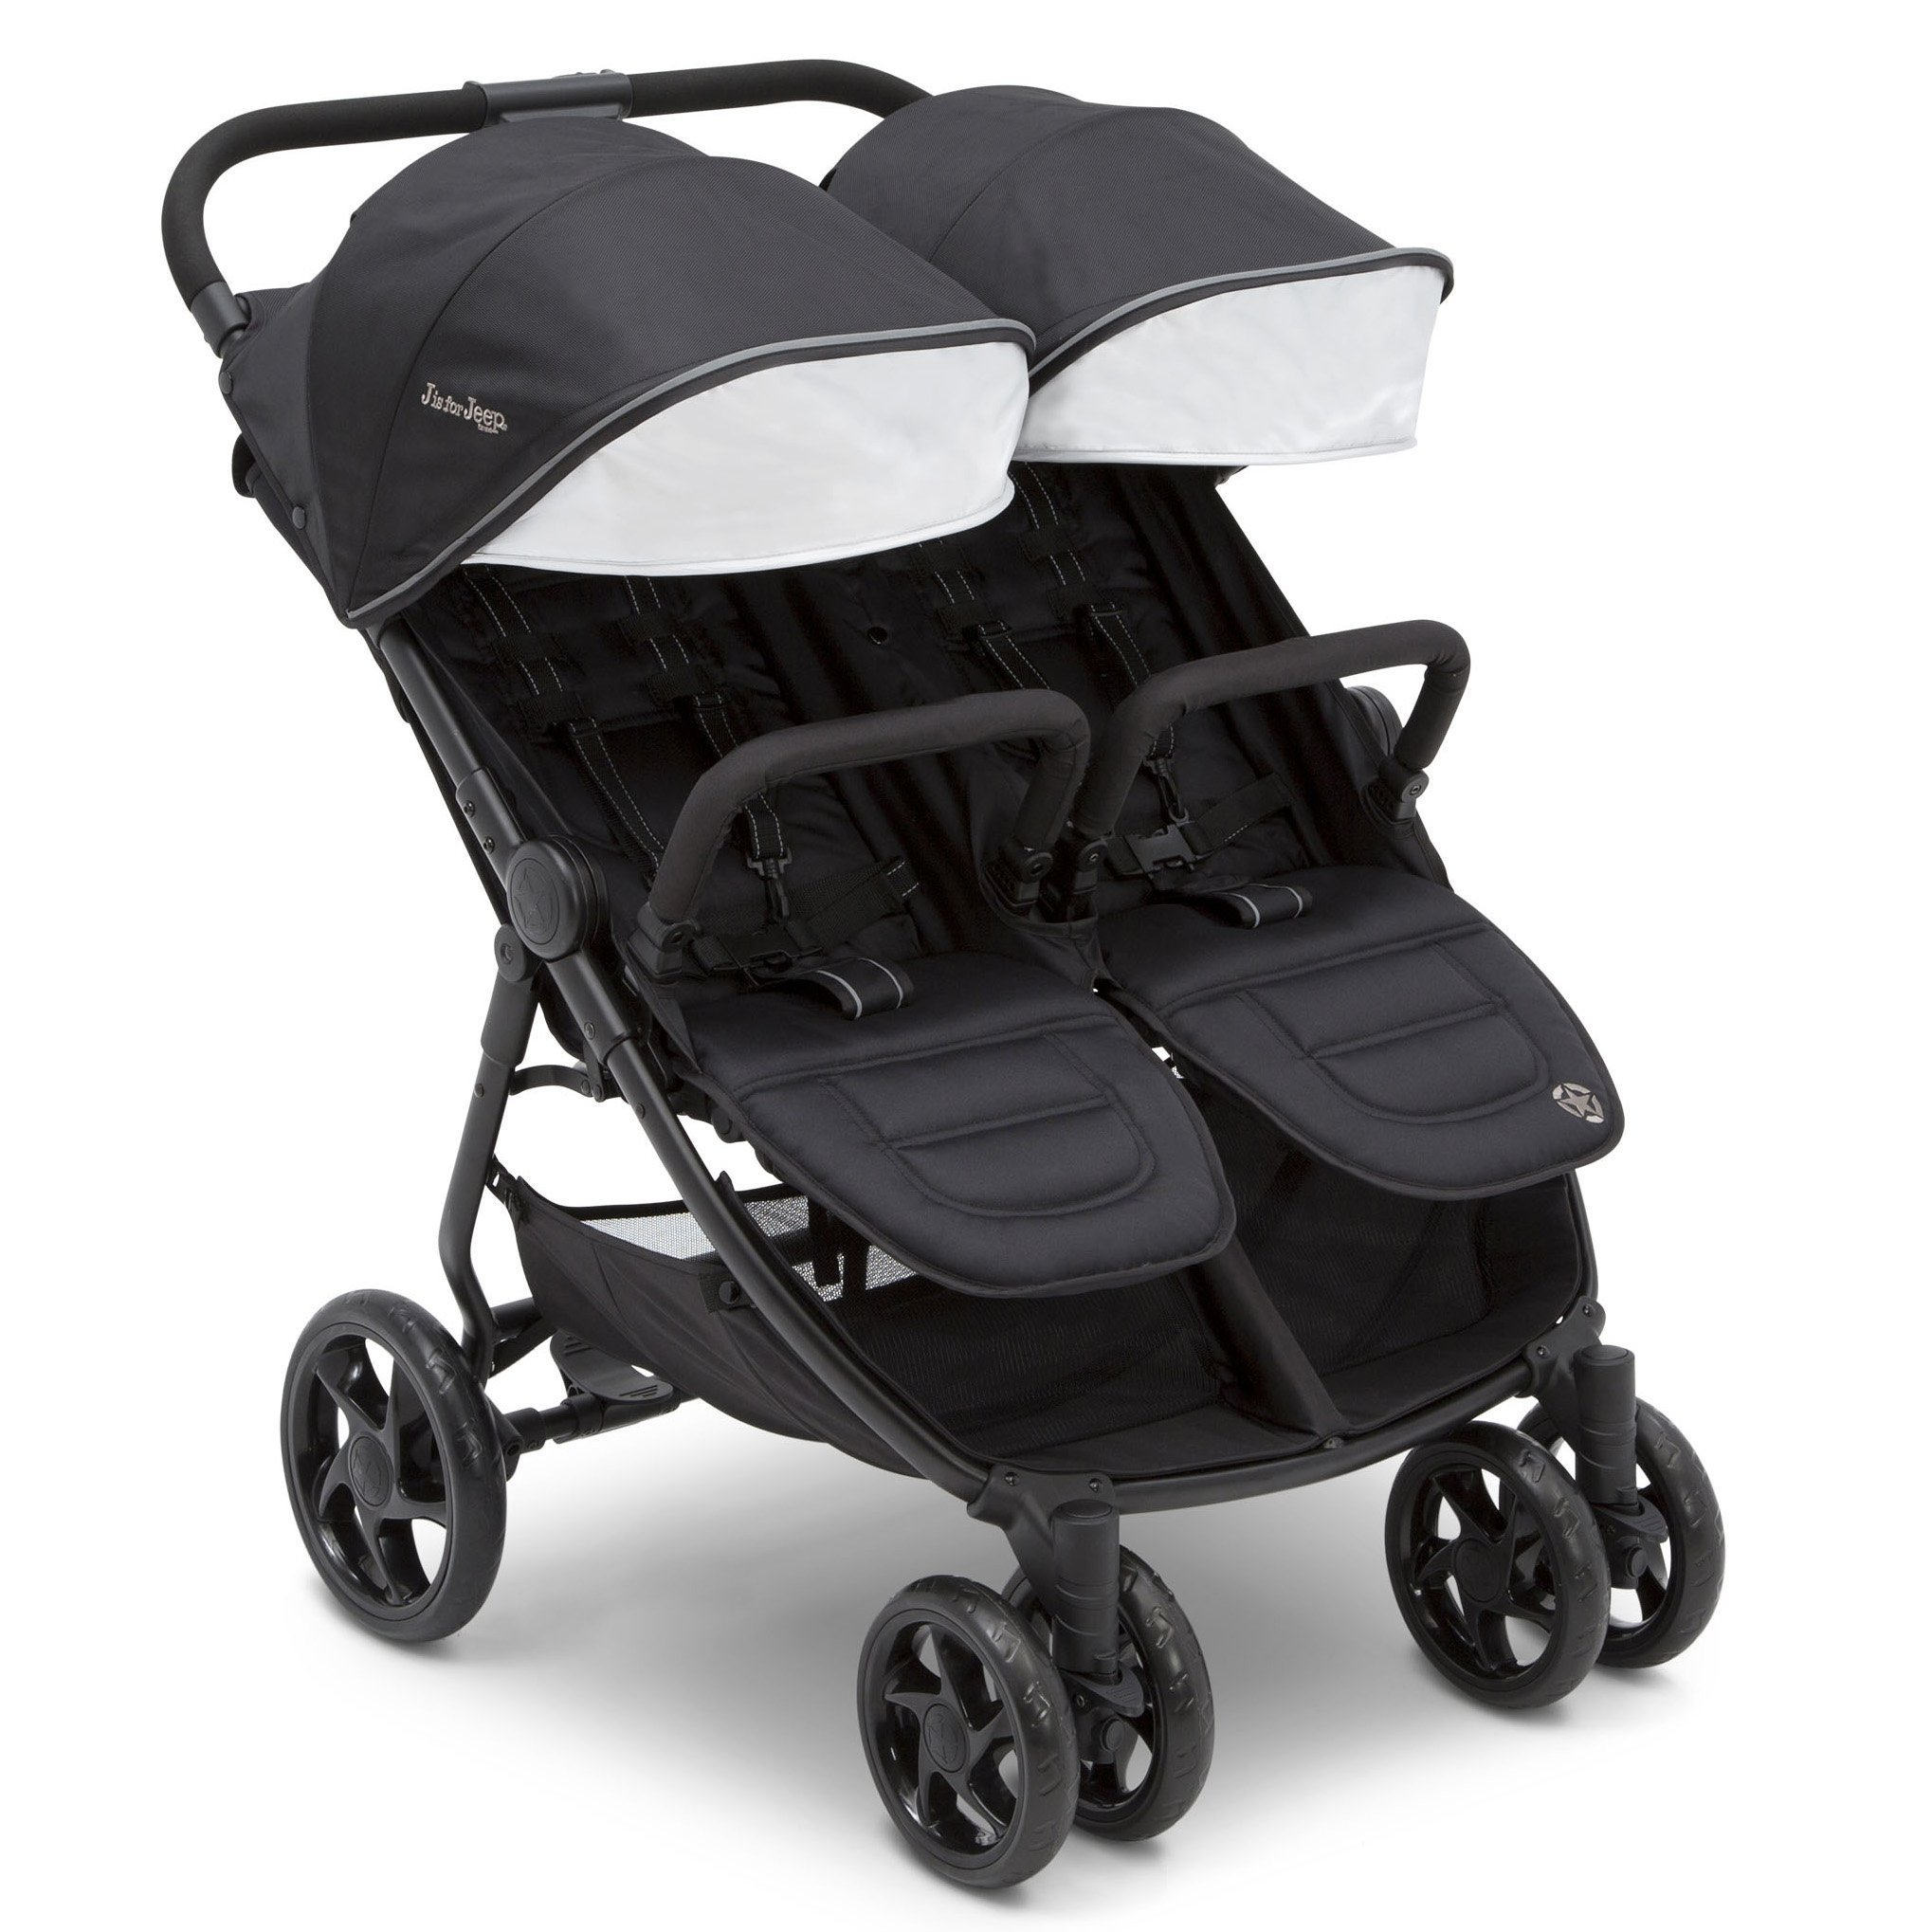 Combi Double Stroller Side By Side Cheap Double Stroller Find Double Stroller Deals On Line At